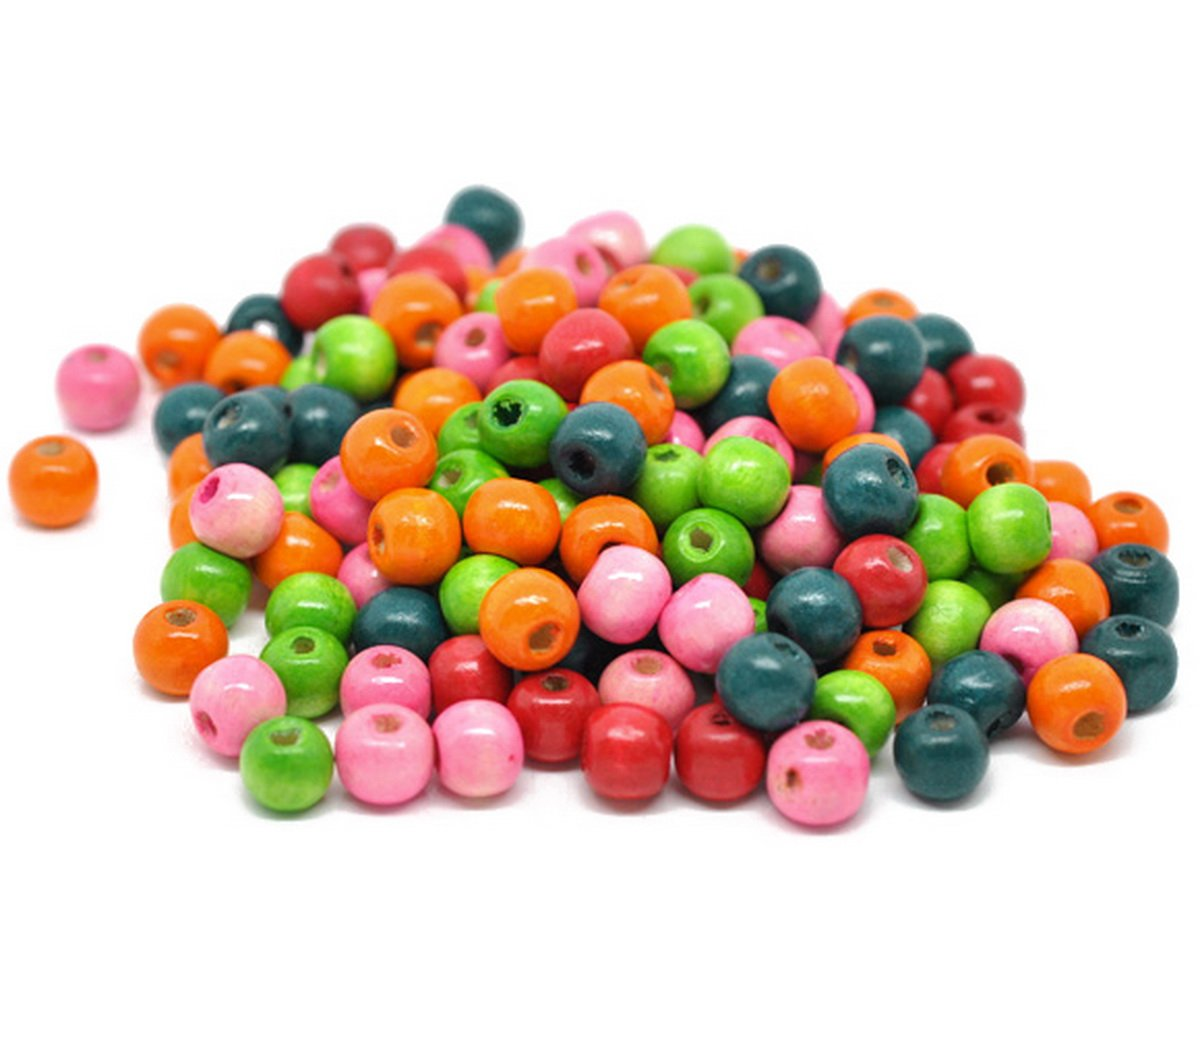 Housweety 100 Mixed Painted Drum Wood Spacer Beads 17x16mm style 1-100pcs